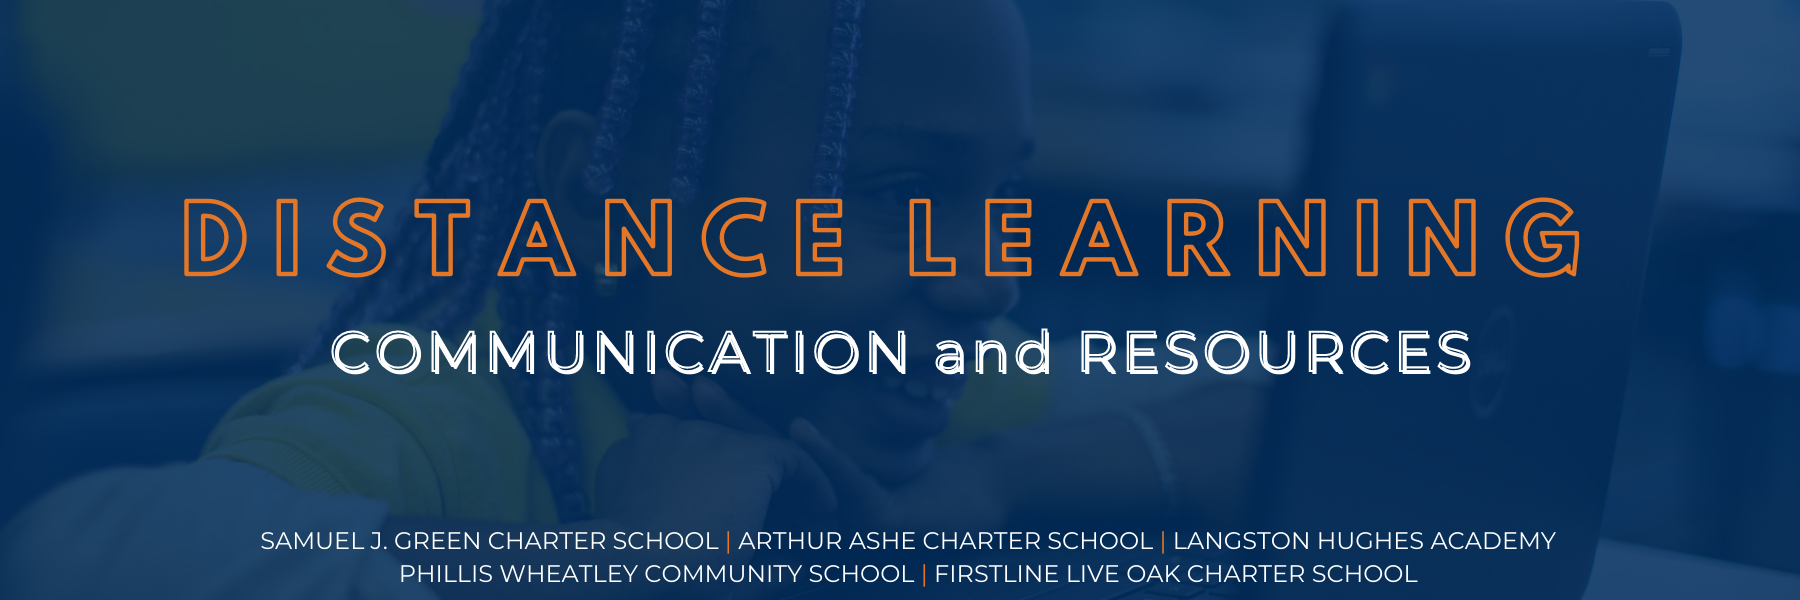 Distance Learning Communication and Resources